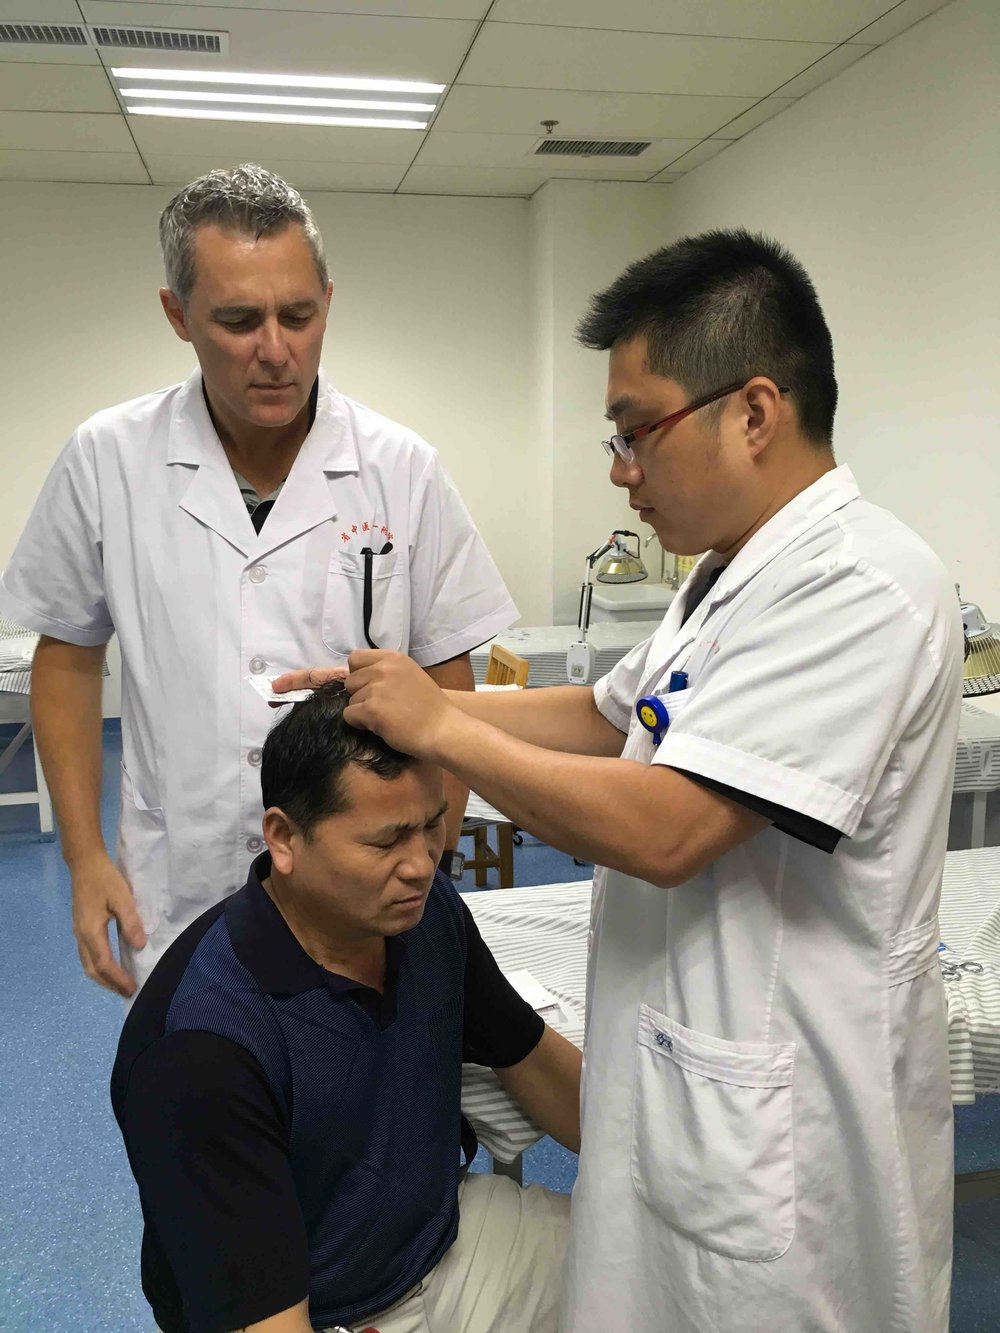 Dr. Tony Willcox completing his 2nd Doctorate in Acupuncture studying at Anhui University of Traditional Chinese Medicine. Pictured here learning Zhu's Scalp acupuncture with Dr. Pan in Hefei, China.